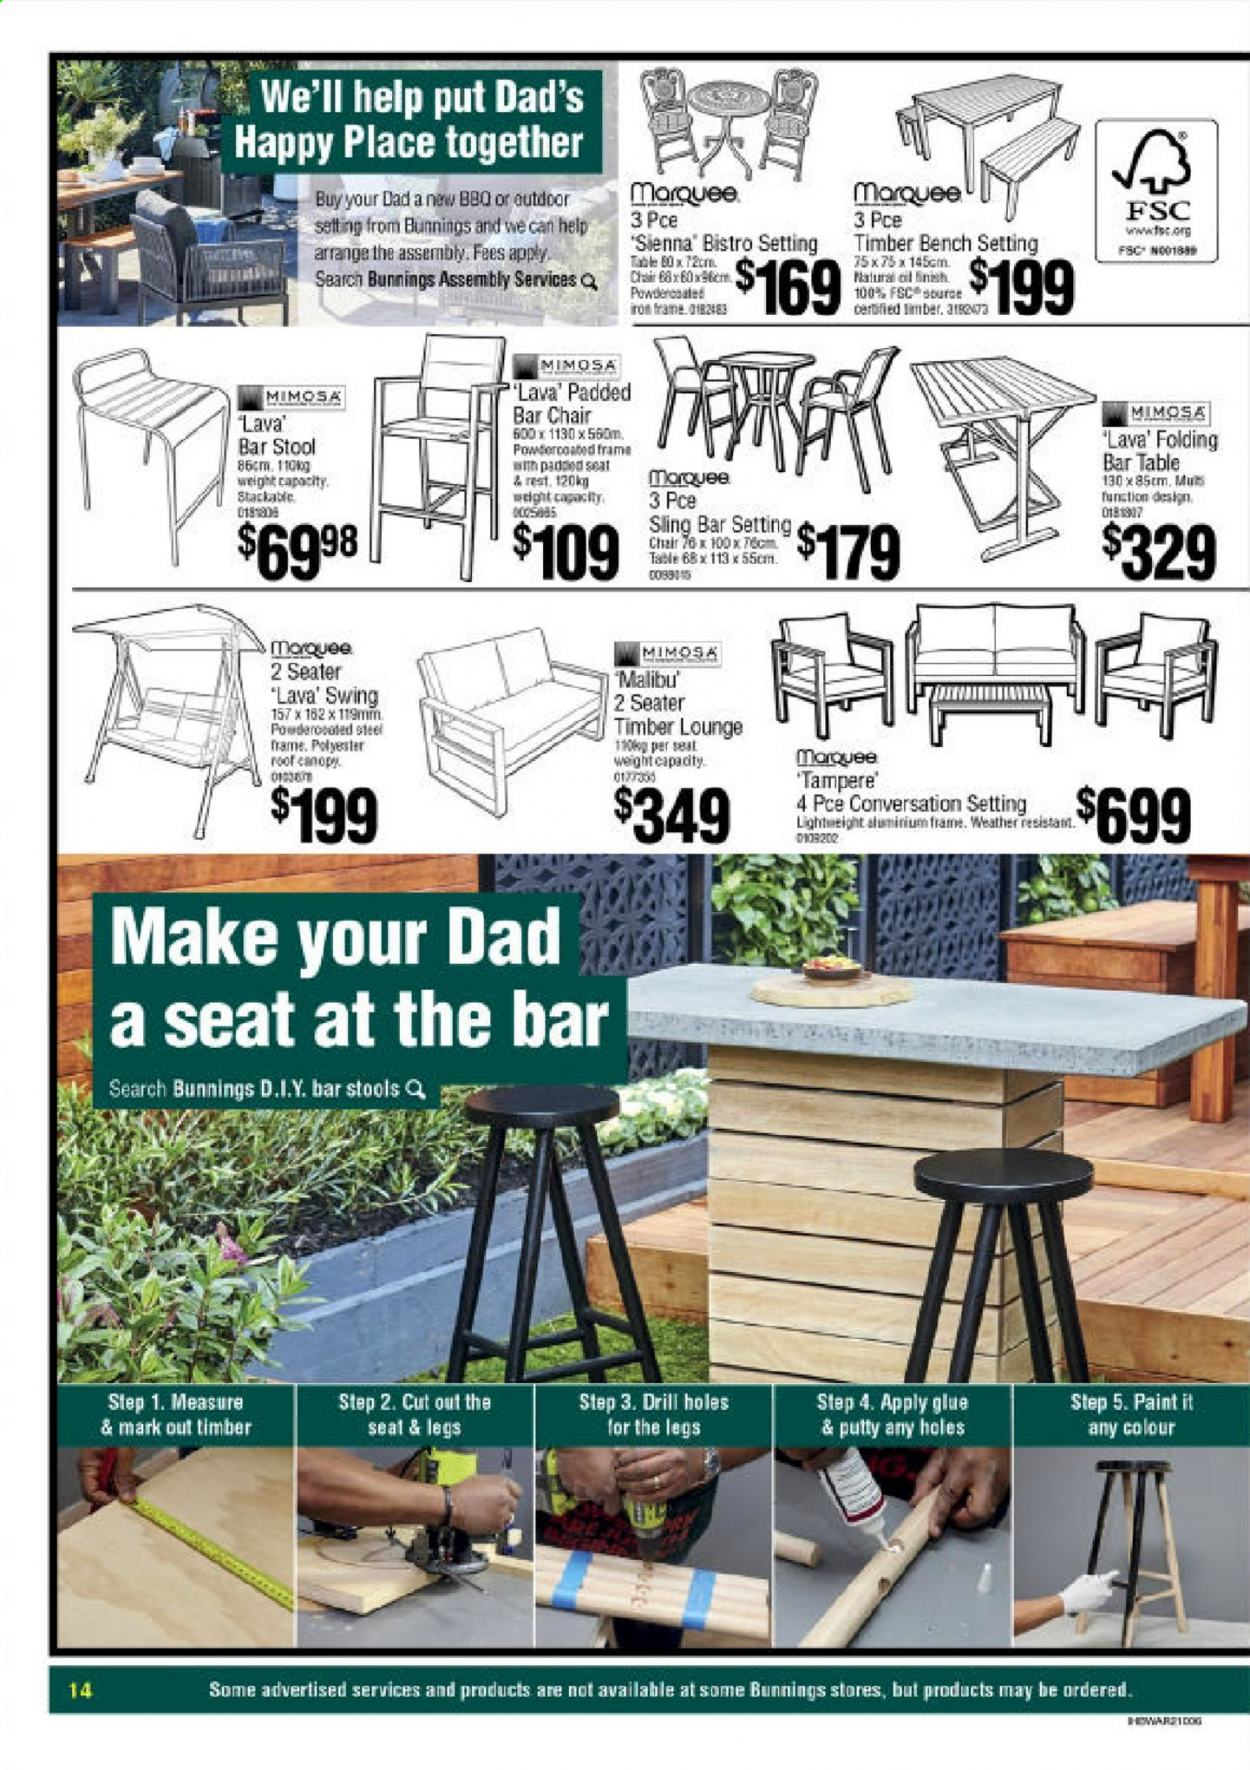 Bunnings Warehouse Catalogue 31 8 2020 6 9 2020 Page 14 Au Catalogues